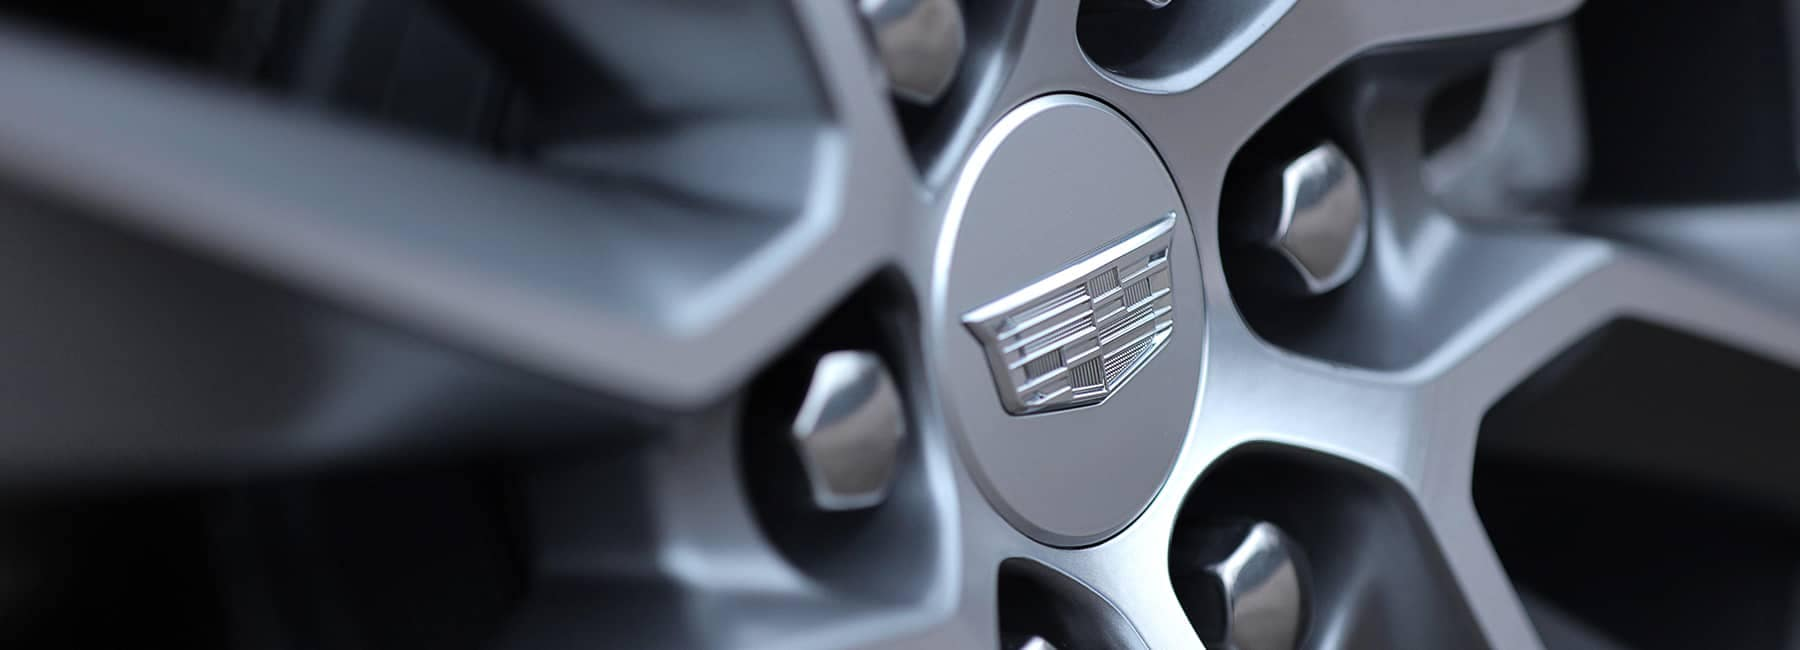 2020 Cadillac Hubcap With Cadillac Emblem on it